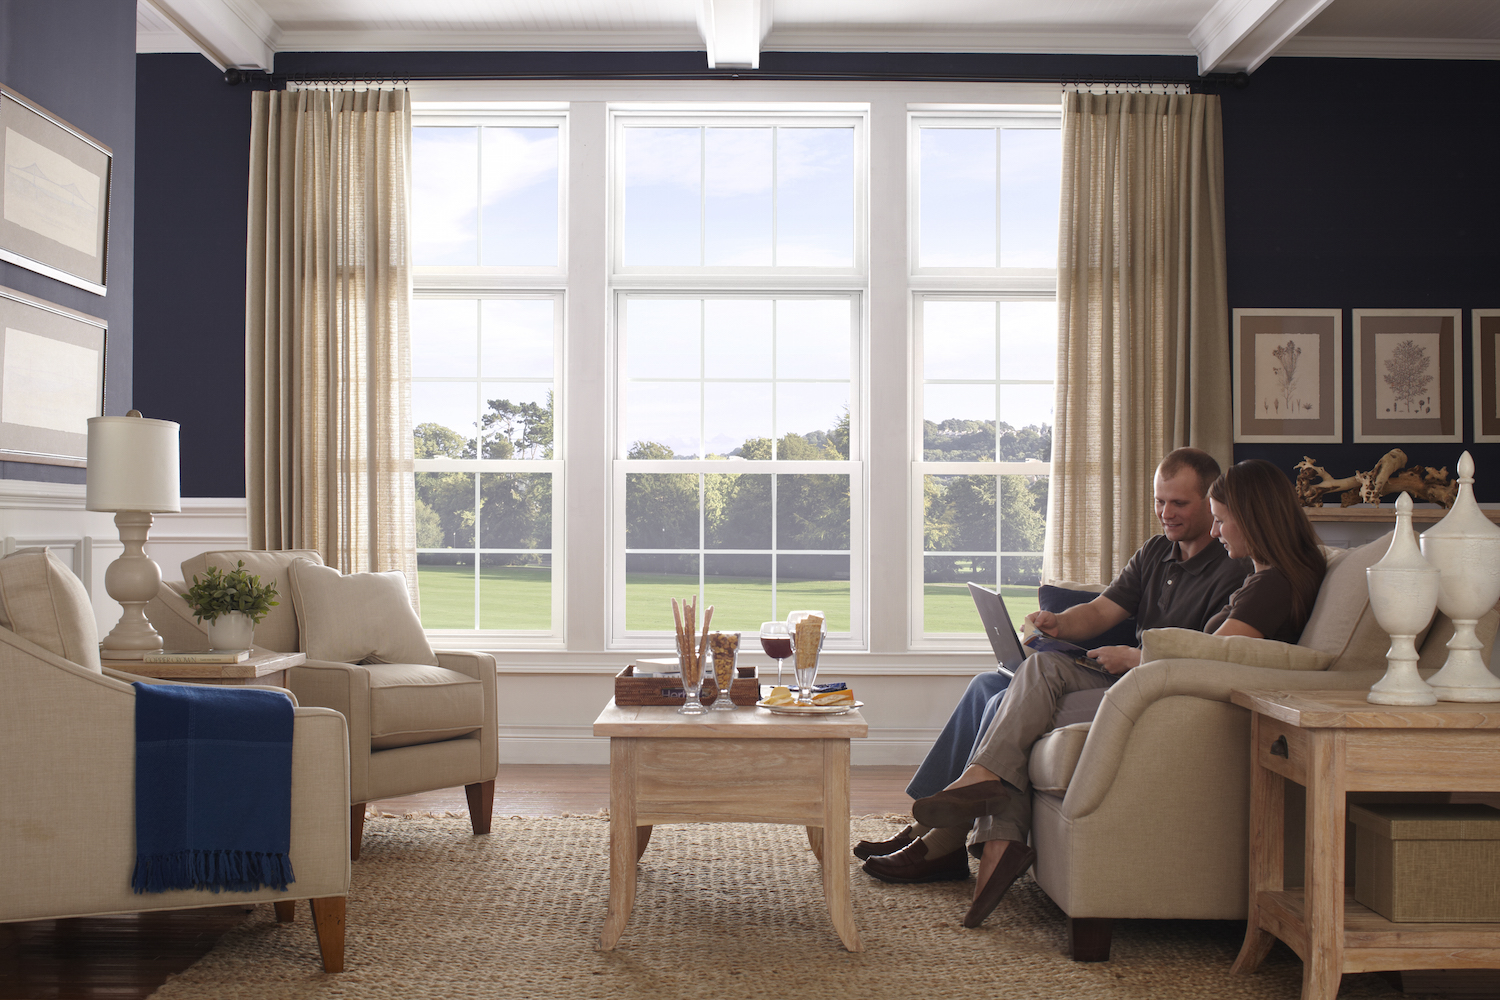 Interior view of living room with colonial grid double hung windows